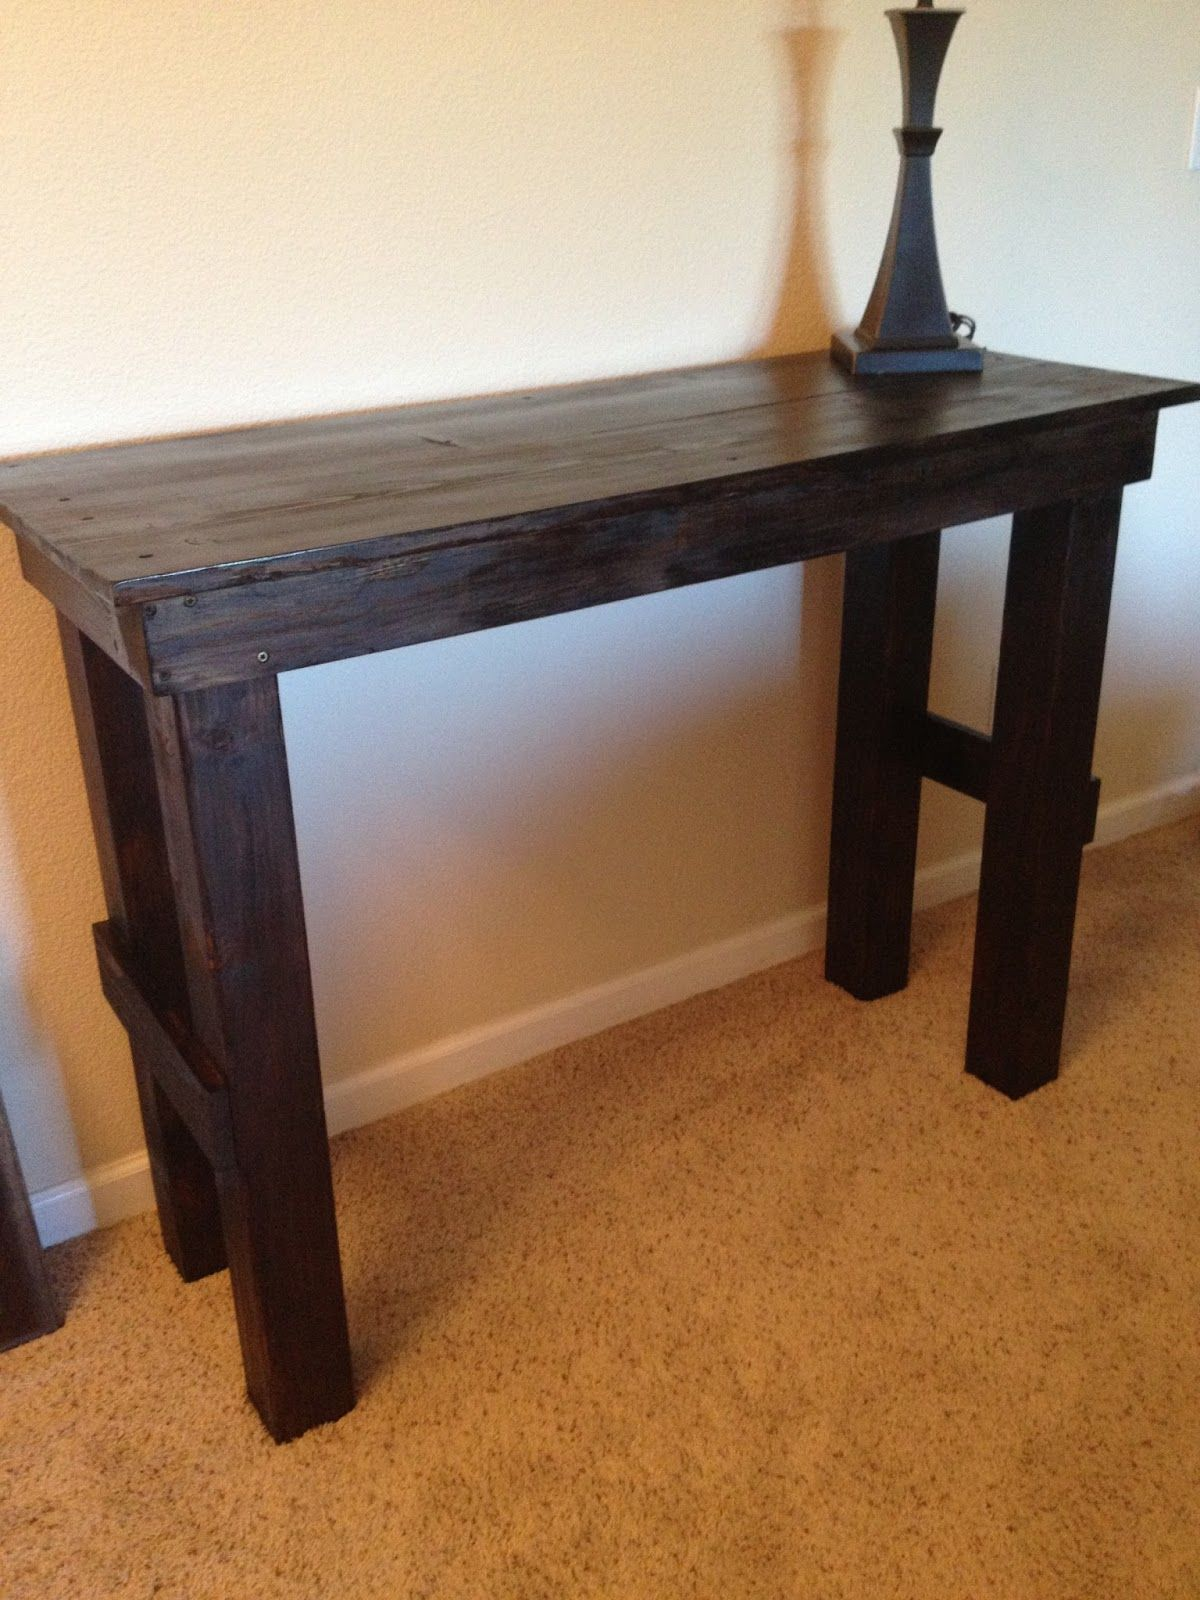 Since getting some cheapo particle board table was not an